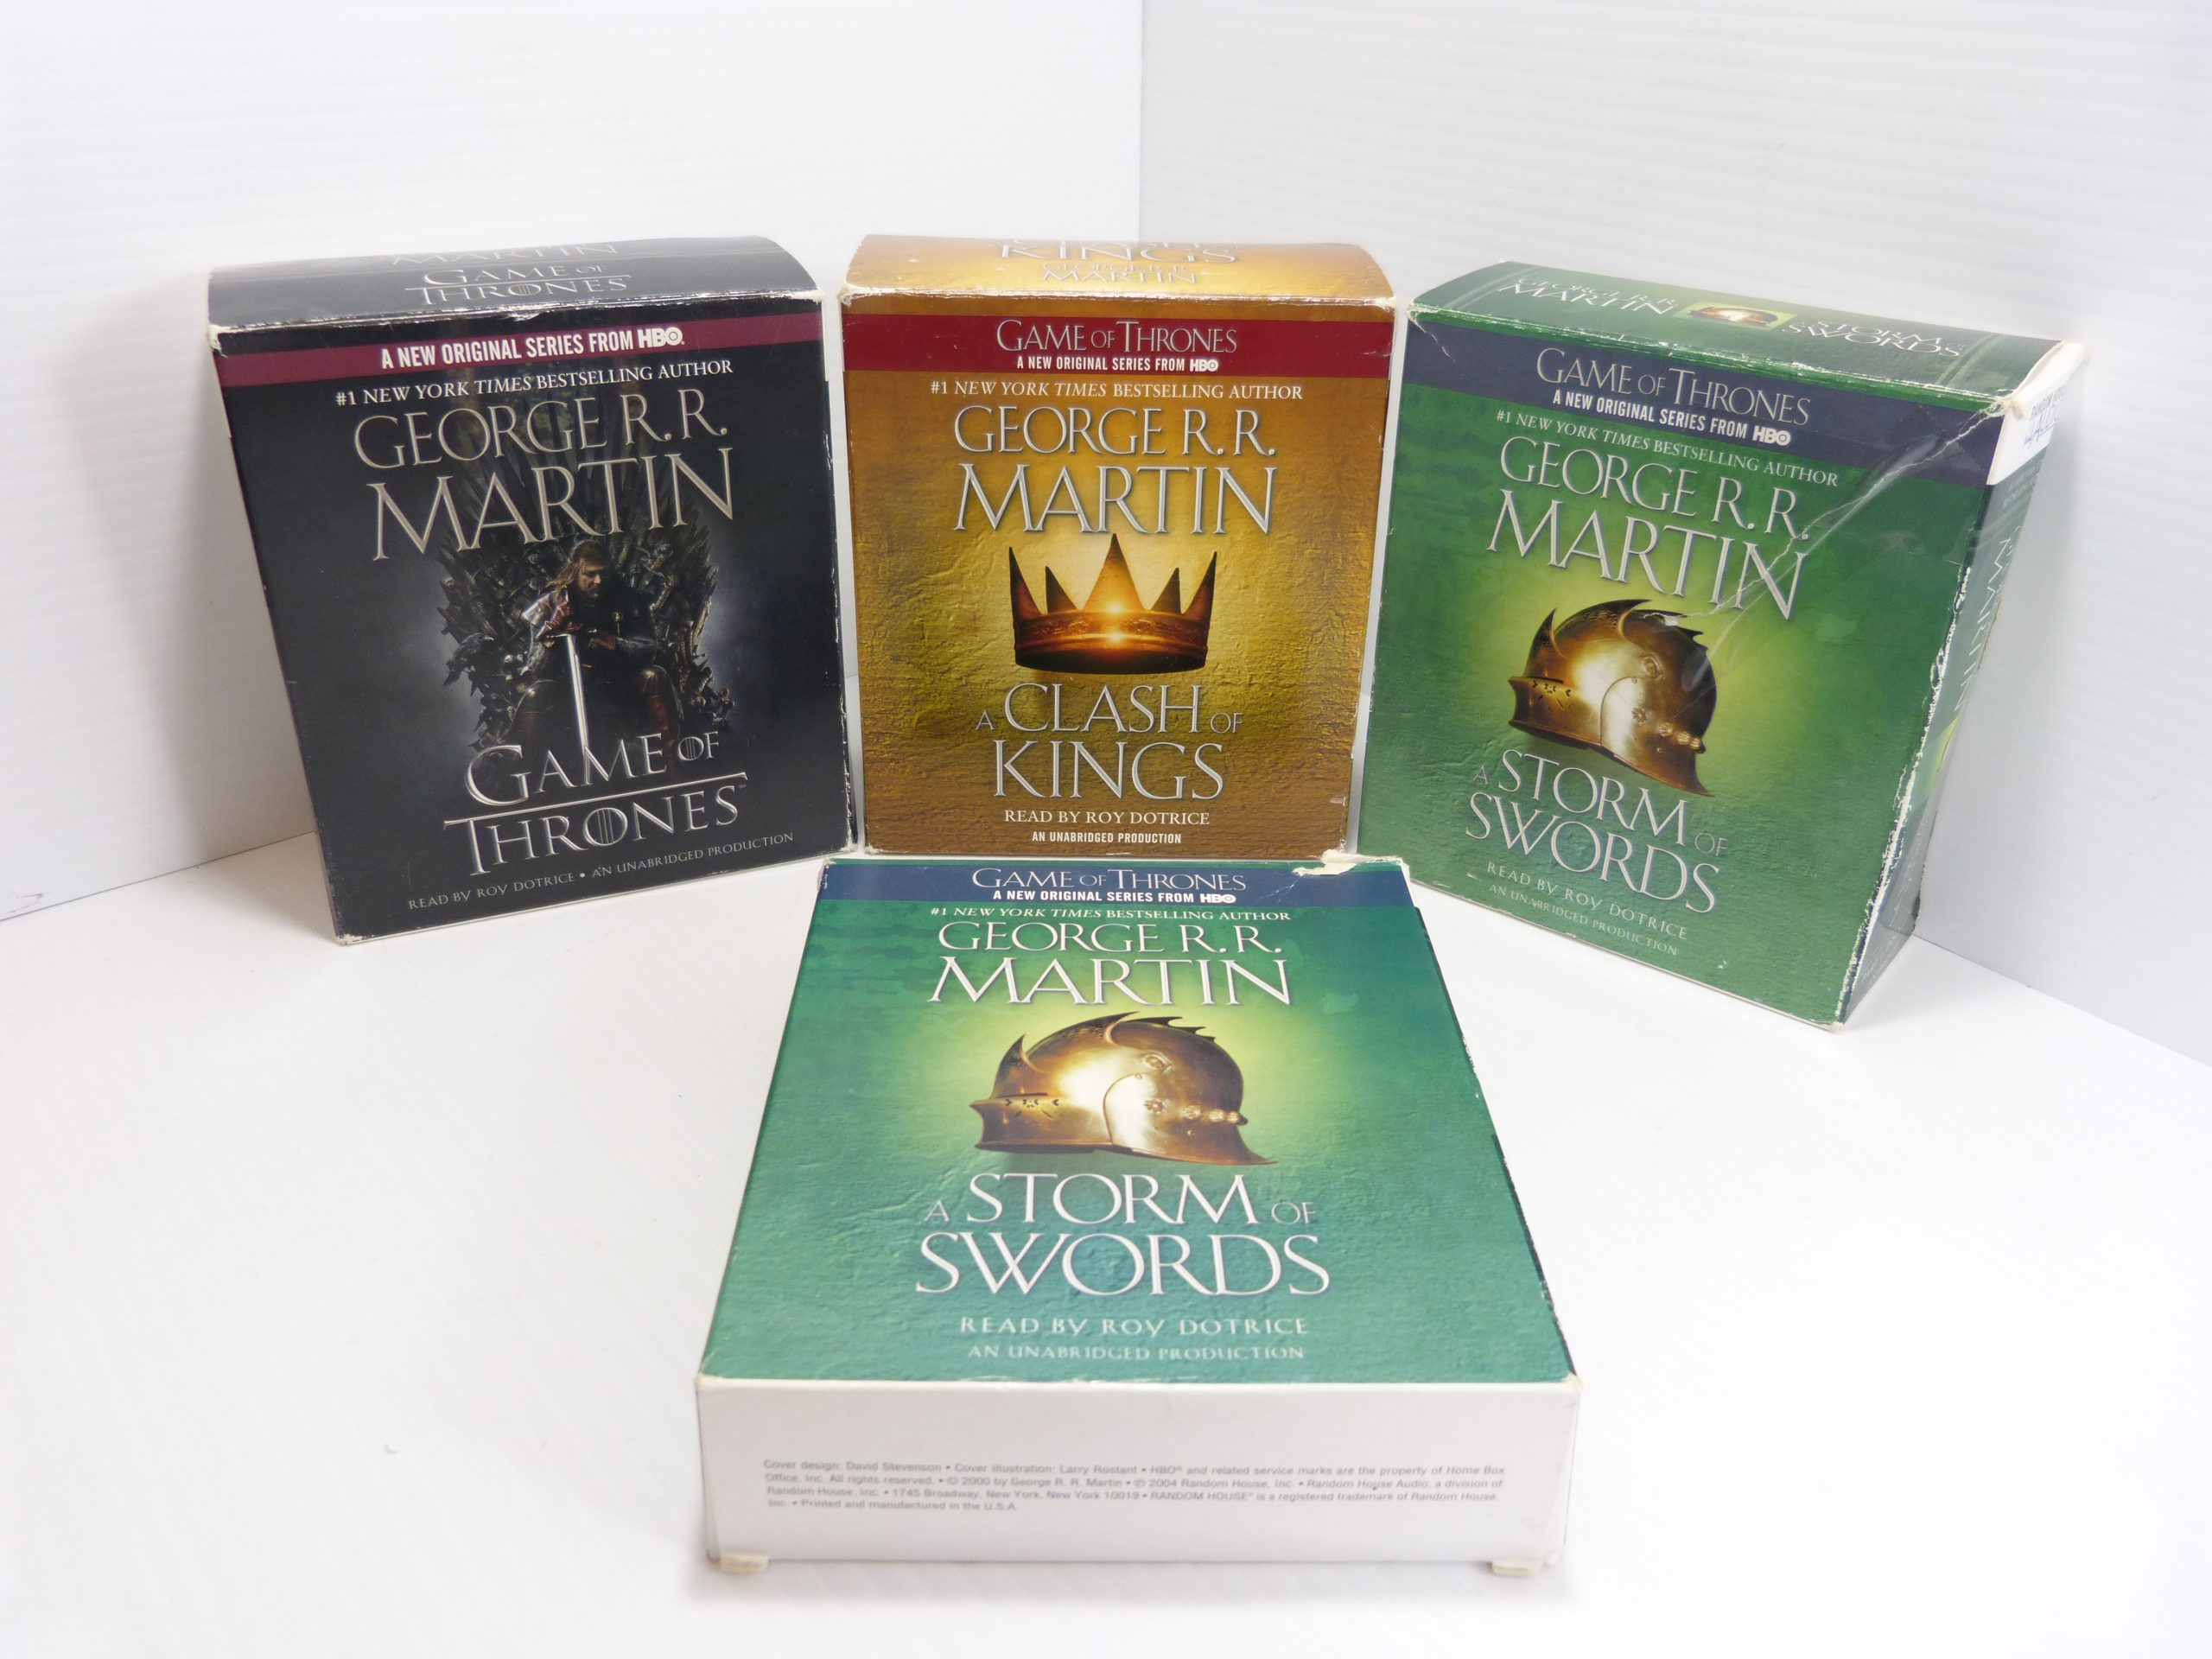 A Game of Thrones - A Clash of Kings - A storm of Swords - Set of Three Audio Books